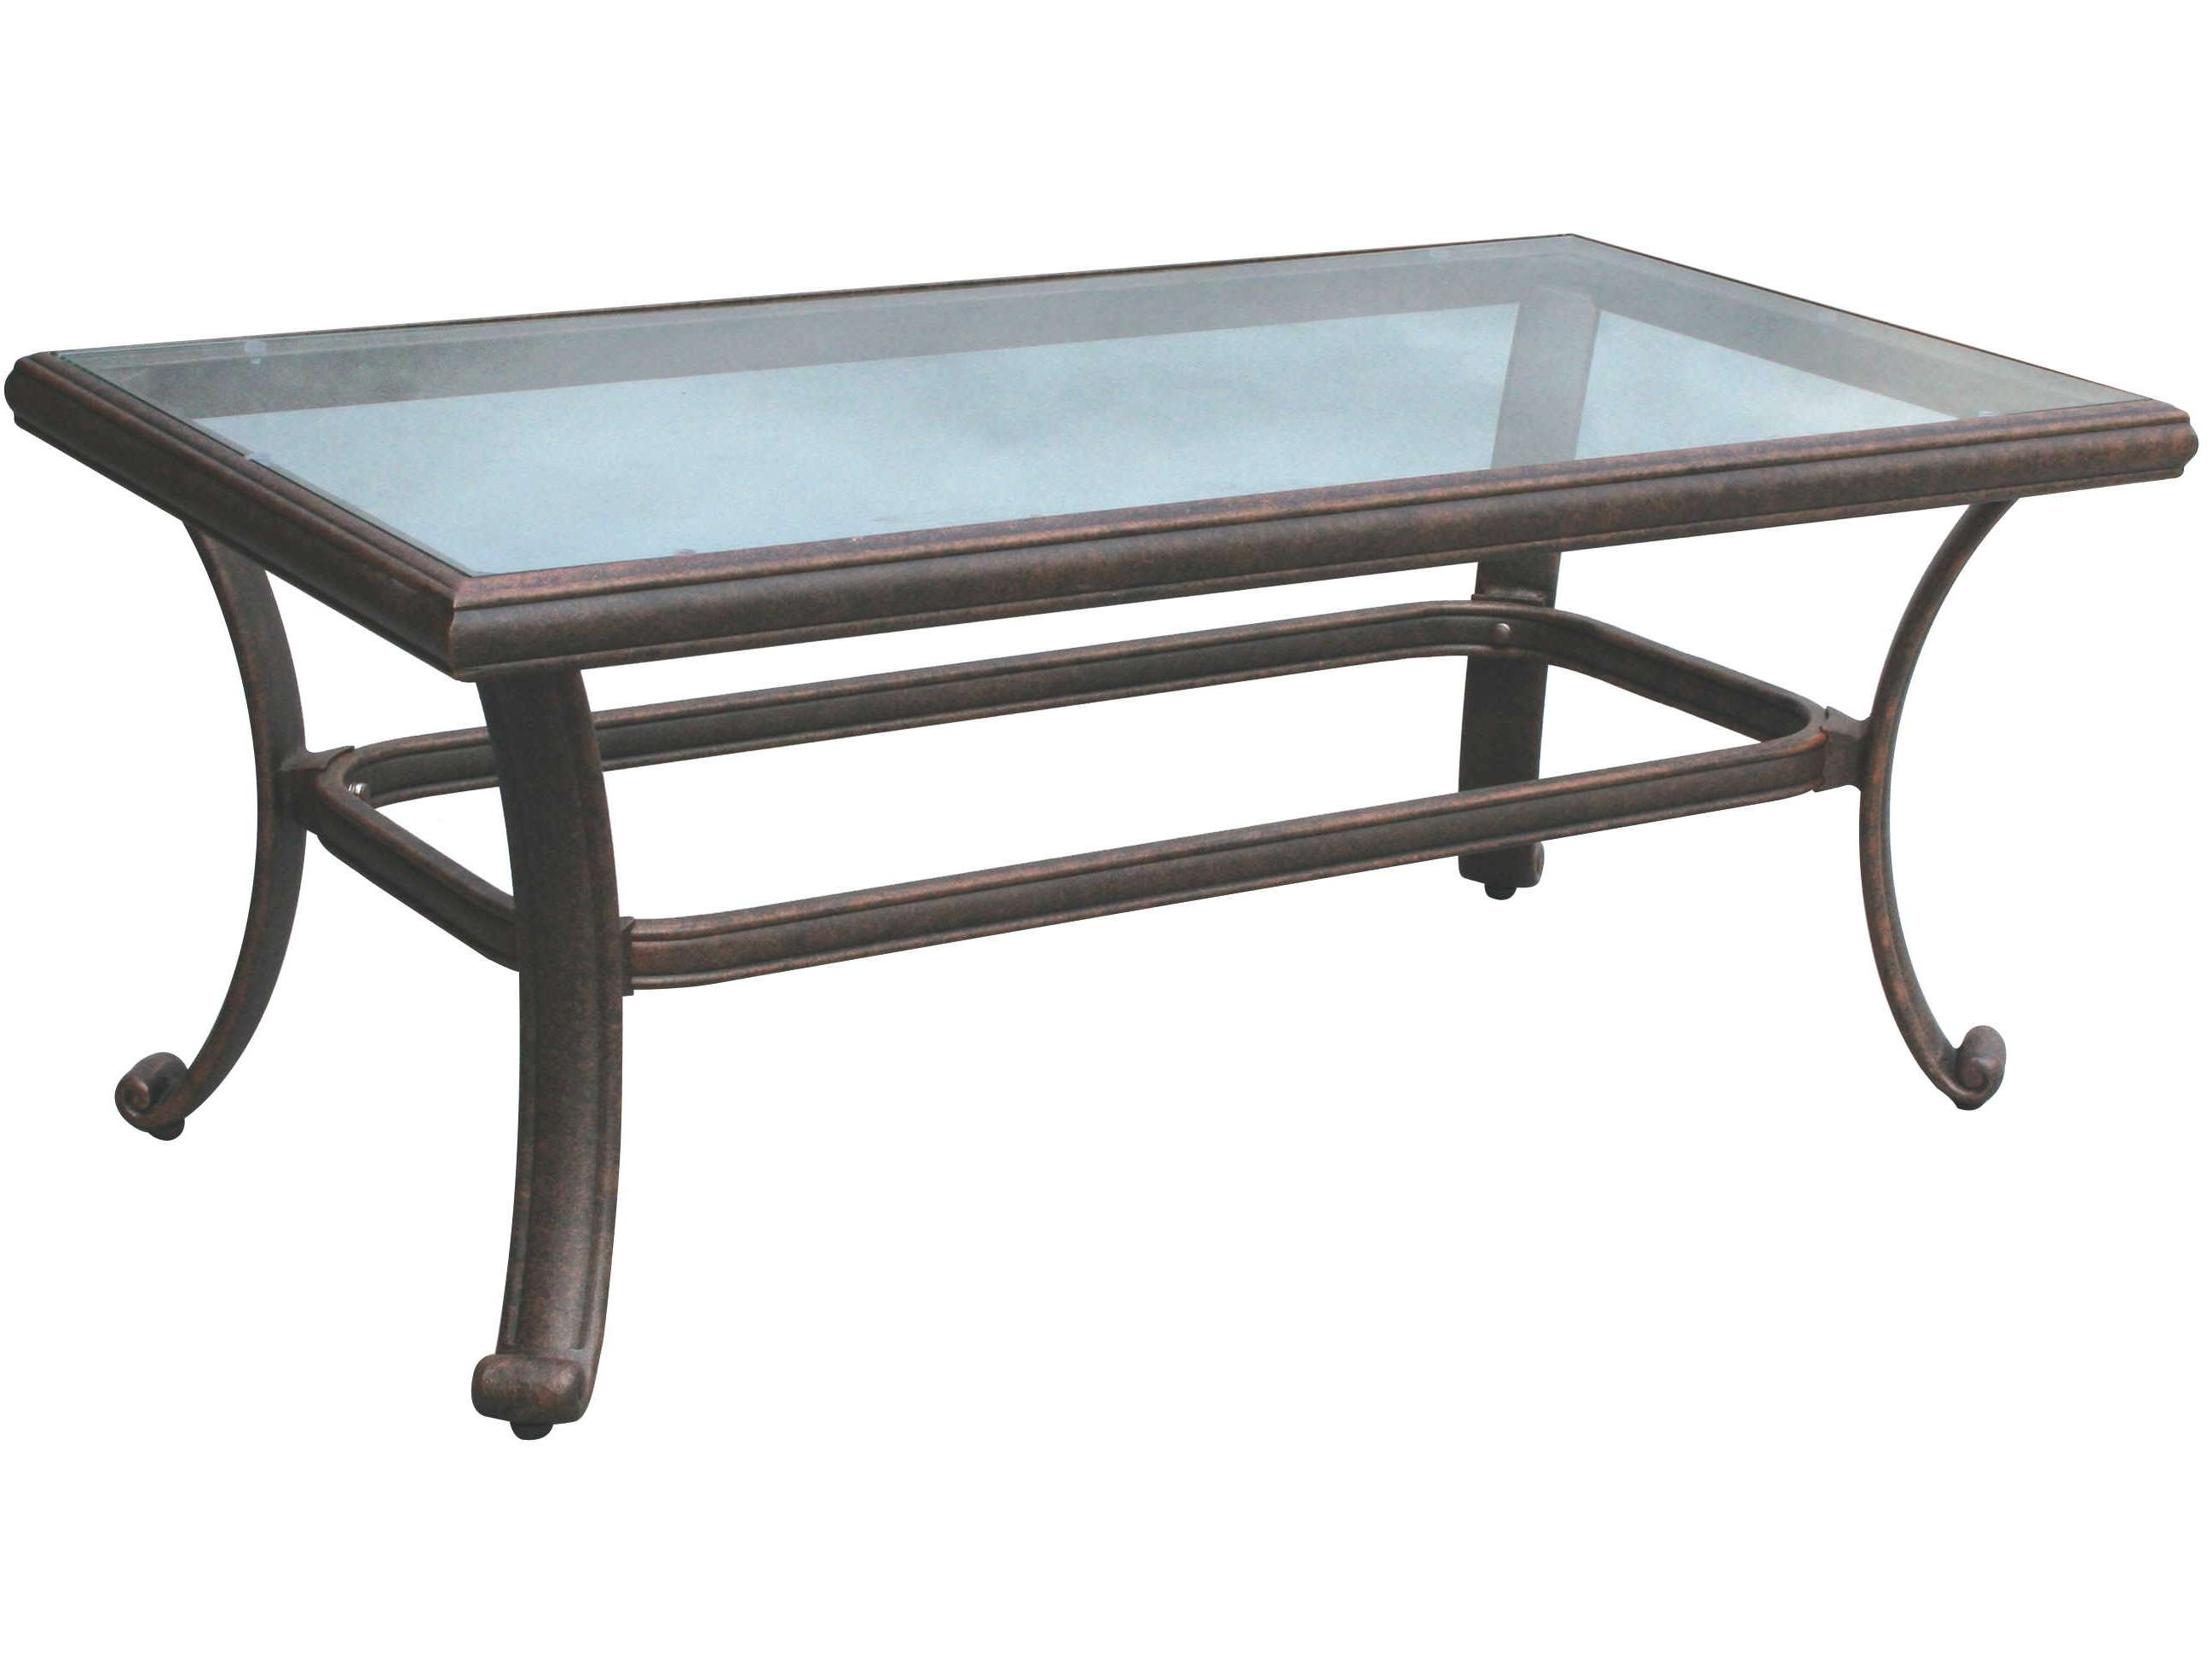 2018 Antique Glass Top Coffee Tables Regarding Outdoor Glass Coffee Table 4mrh – Cnxconsortium (View 8 of 20)